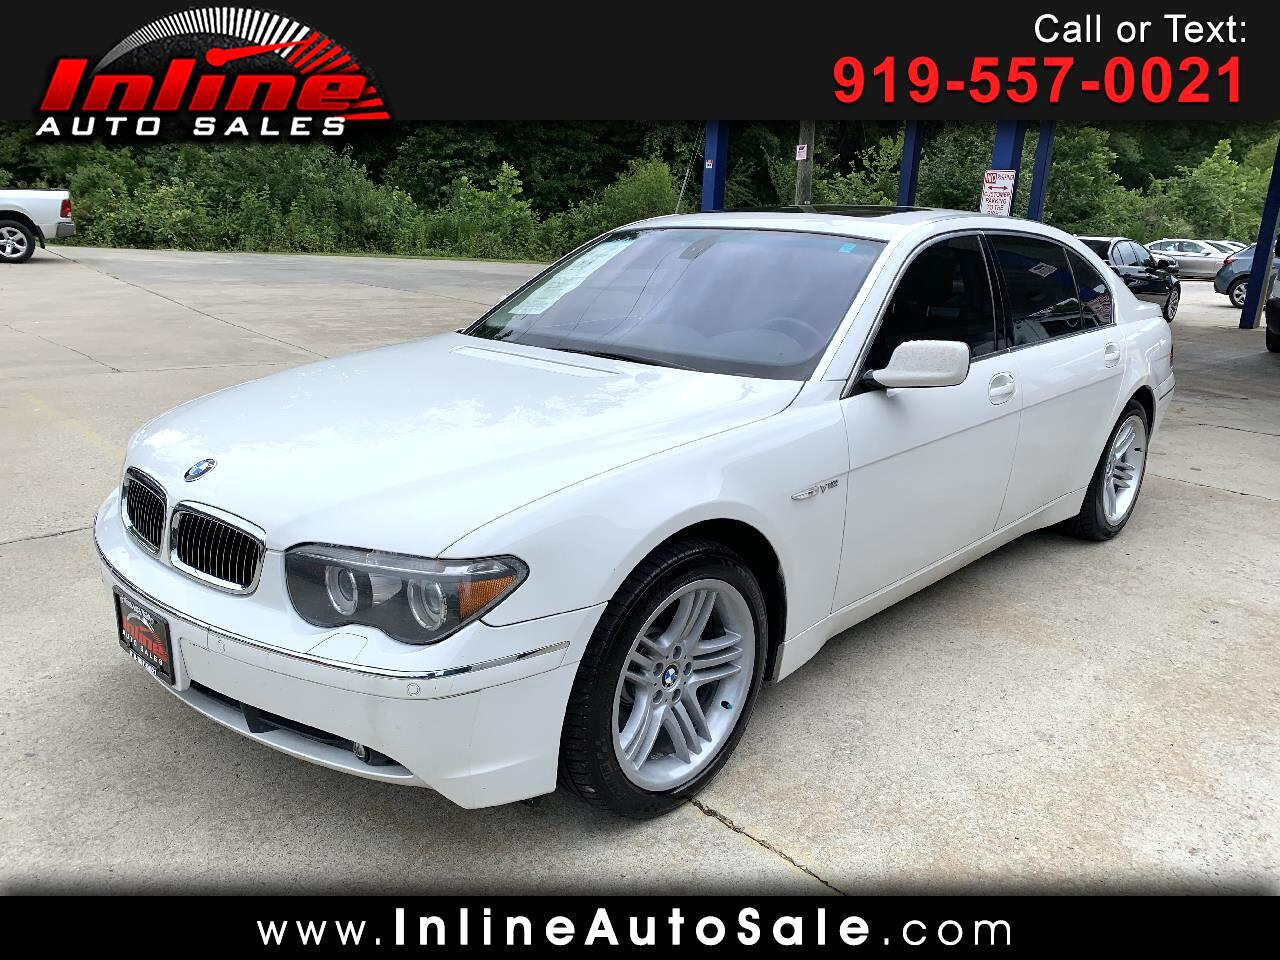 2004 BMW 7 Series 760Li 4dr Sdn